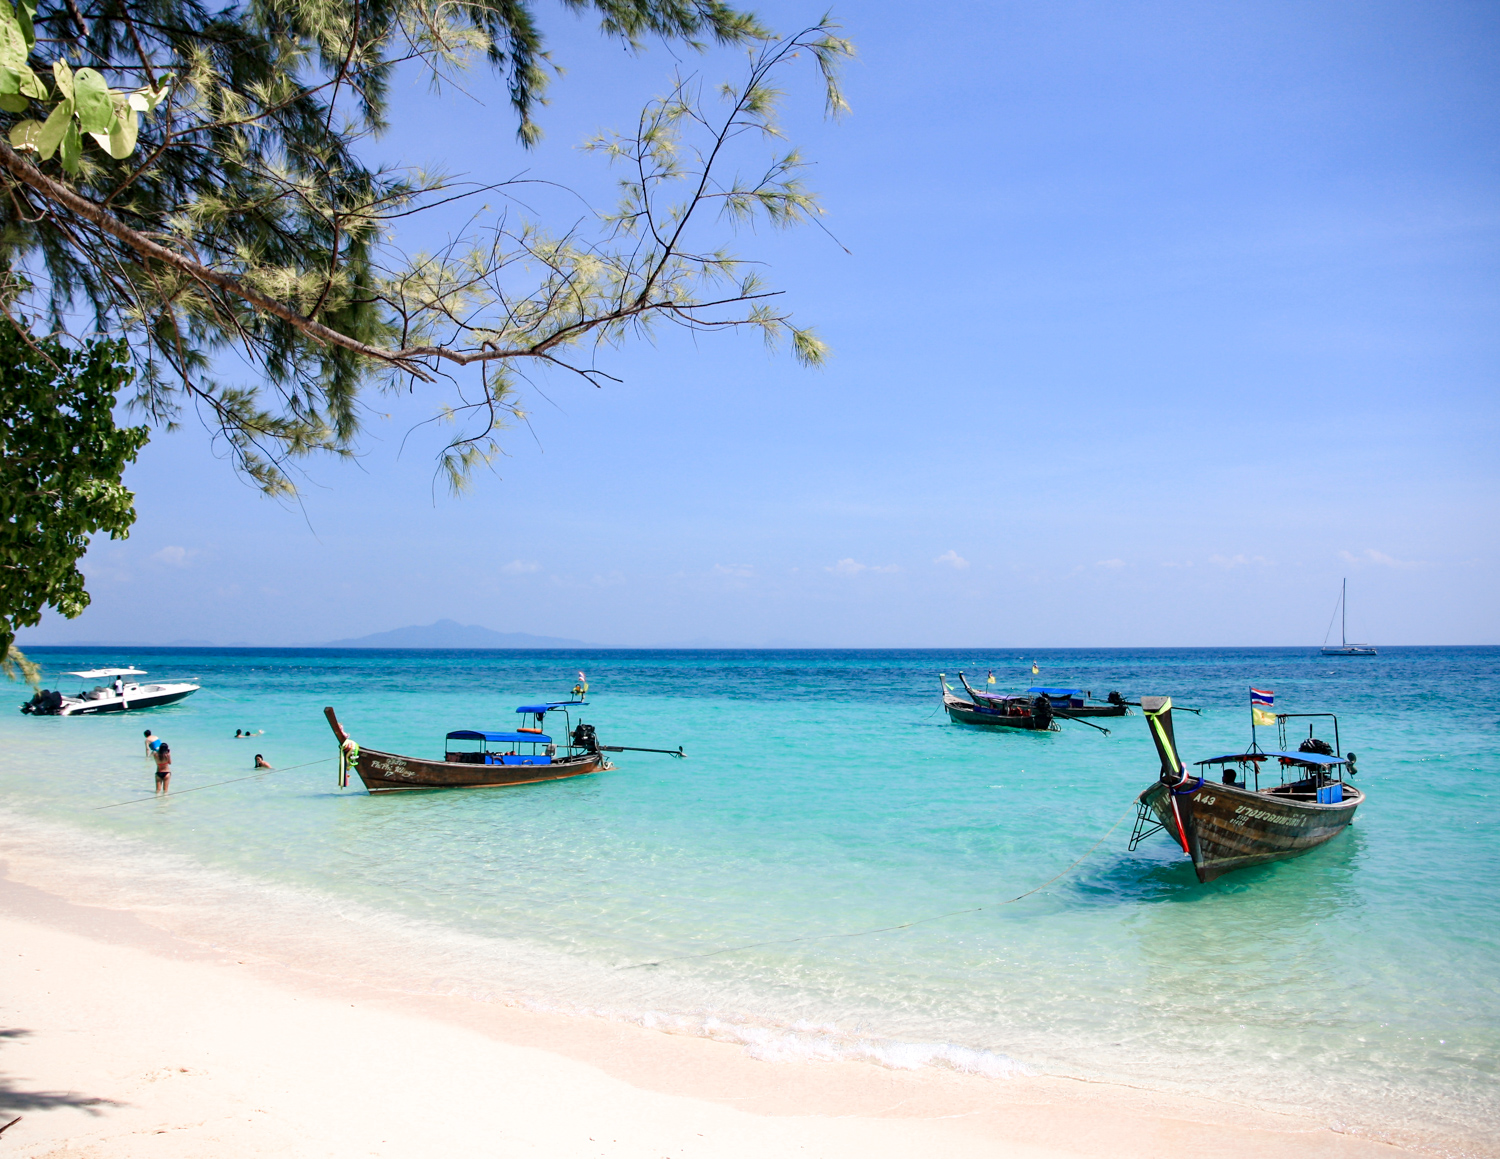 Bamboo Island, Best things to do in Thailand